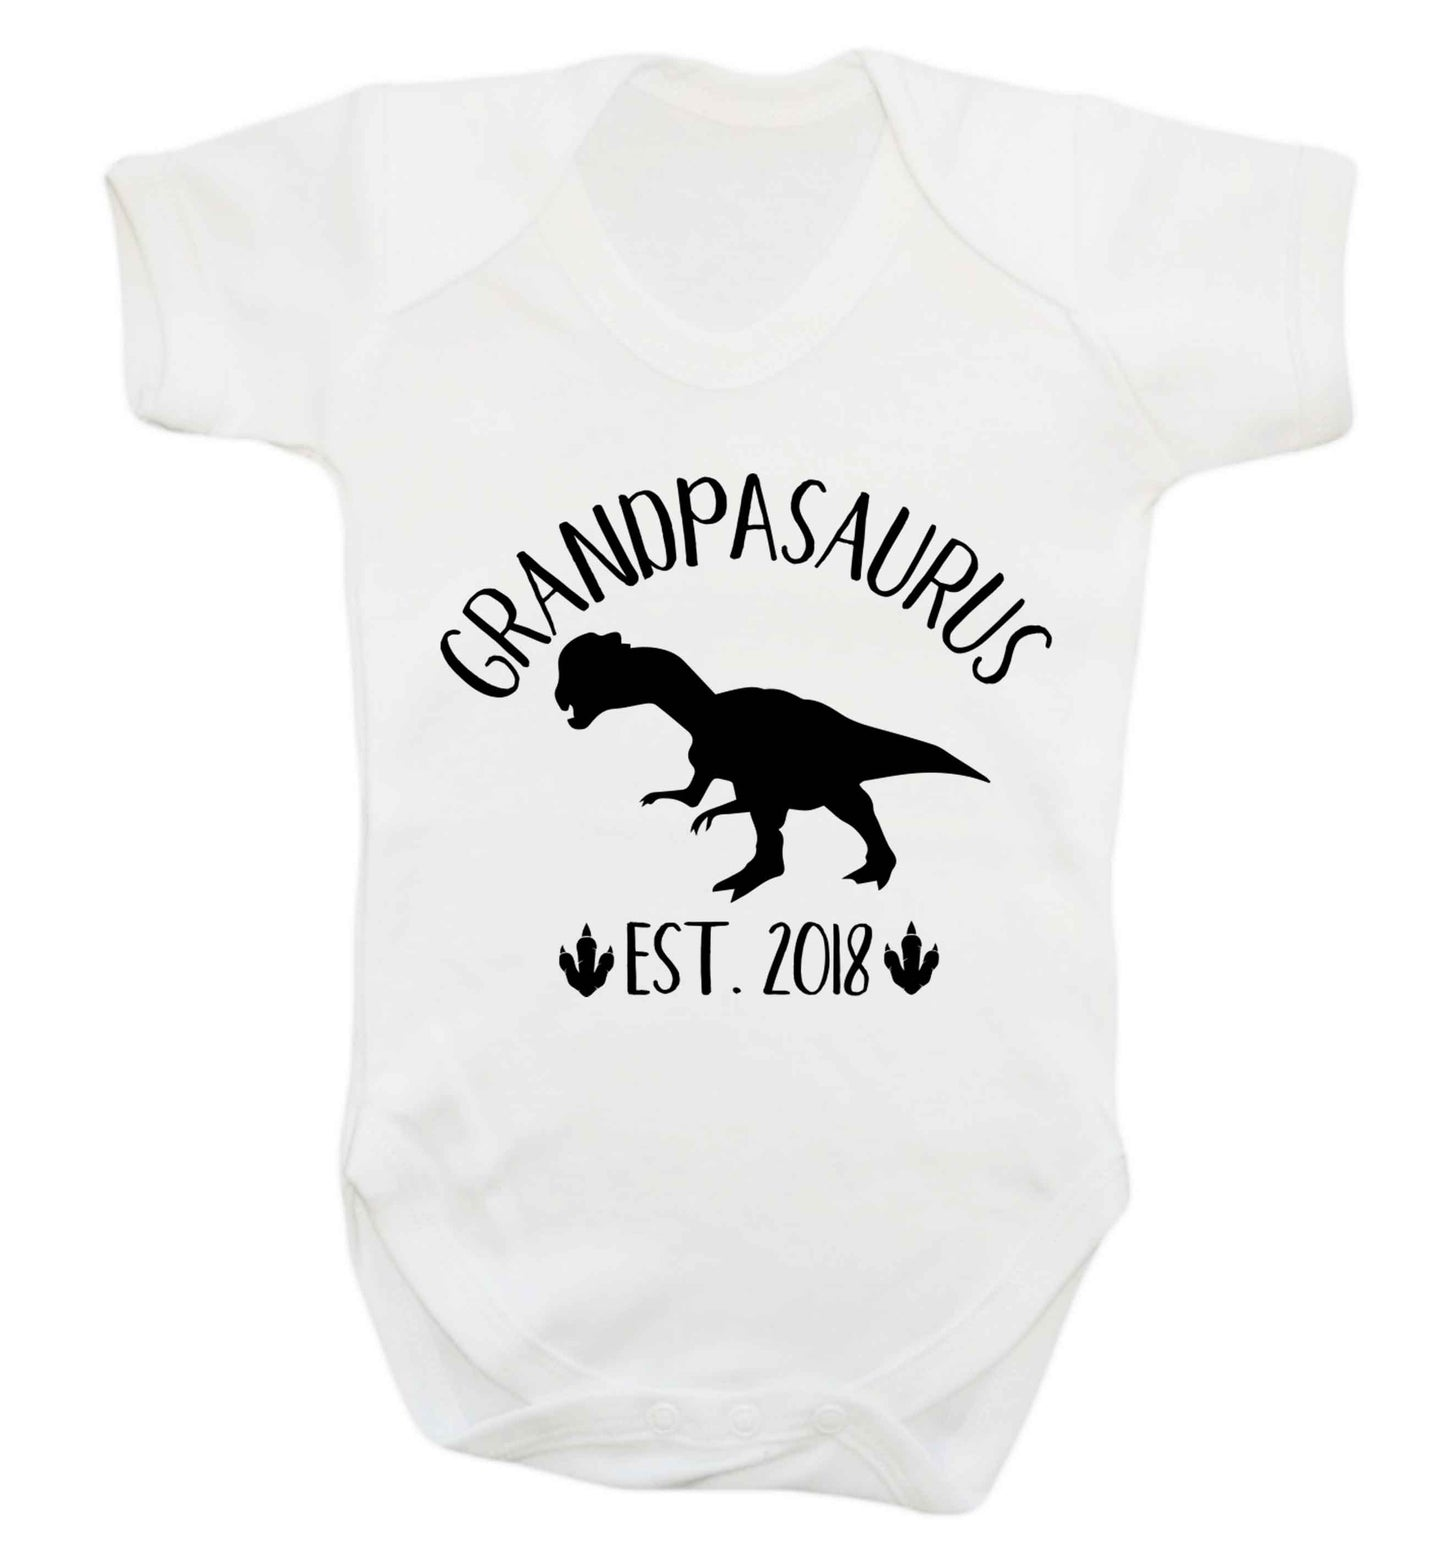 Personalised grandpasaurus since (custom date) Baby Vest white 18-24 months